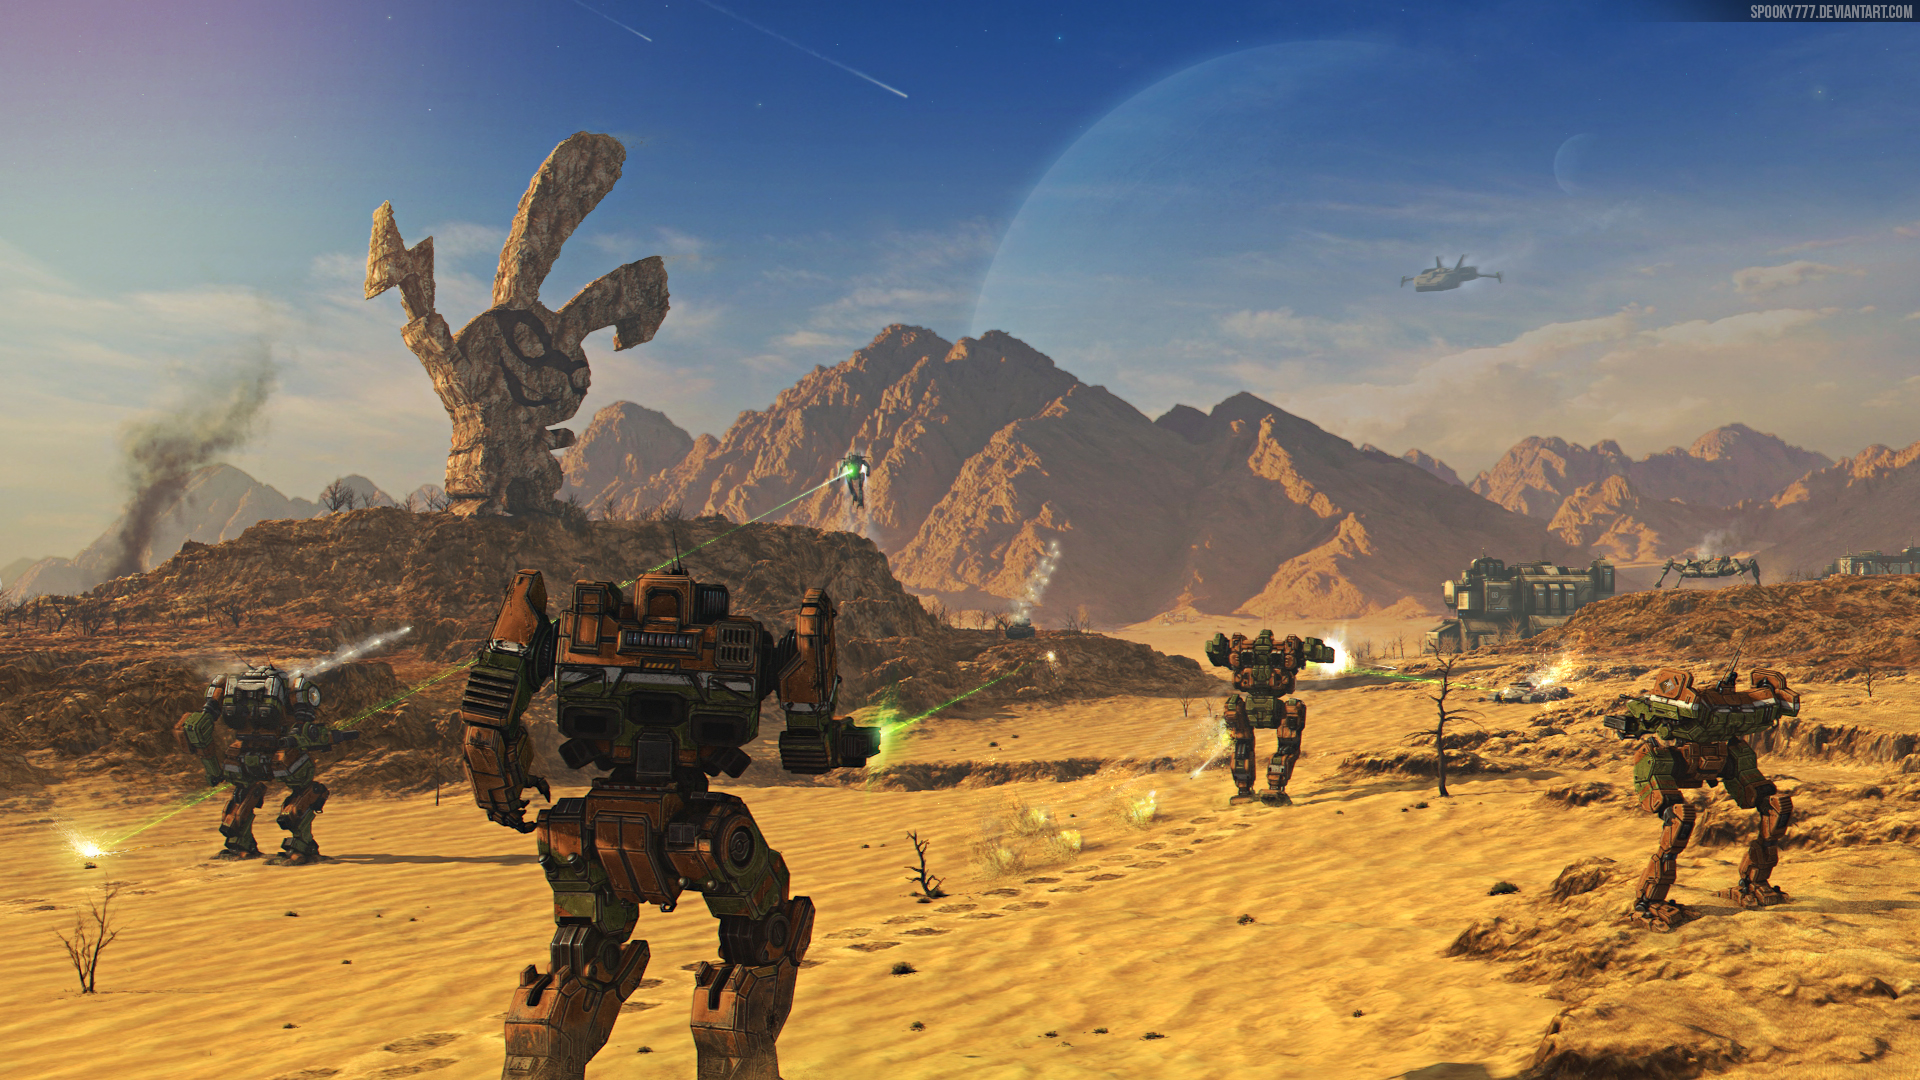 harebrained_mission_by_spooky777-dcb92a1.jpg